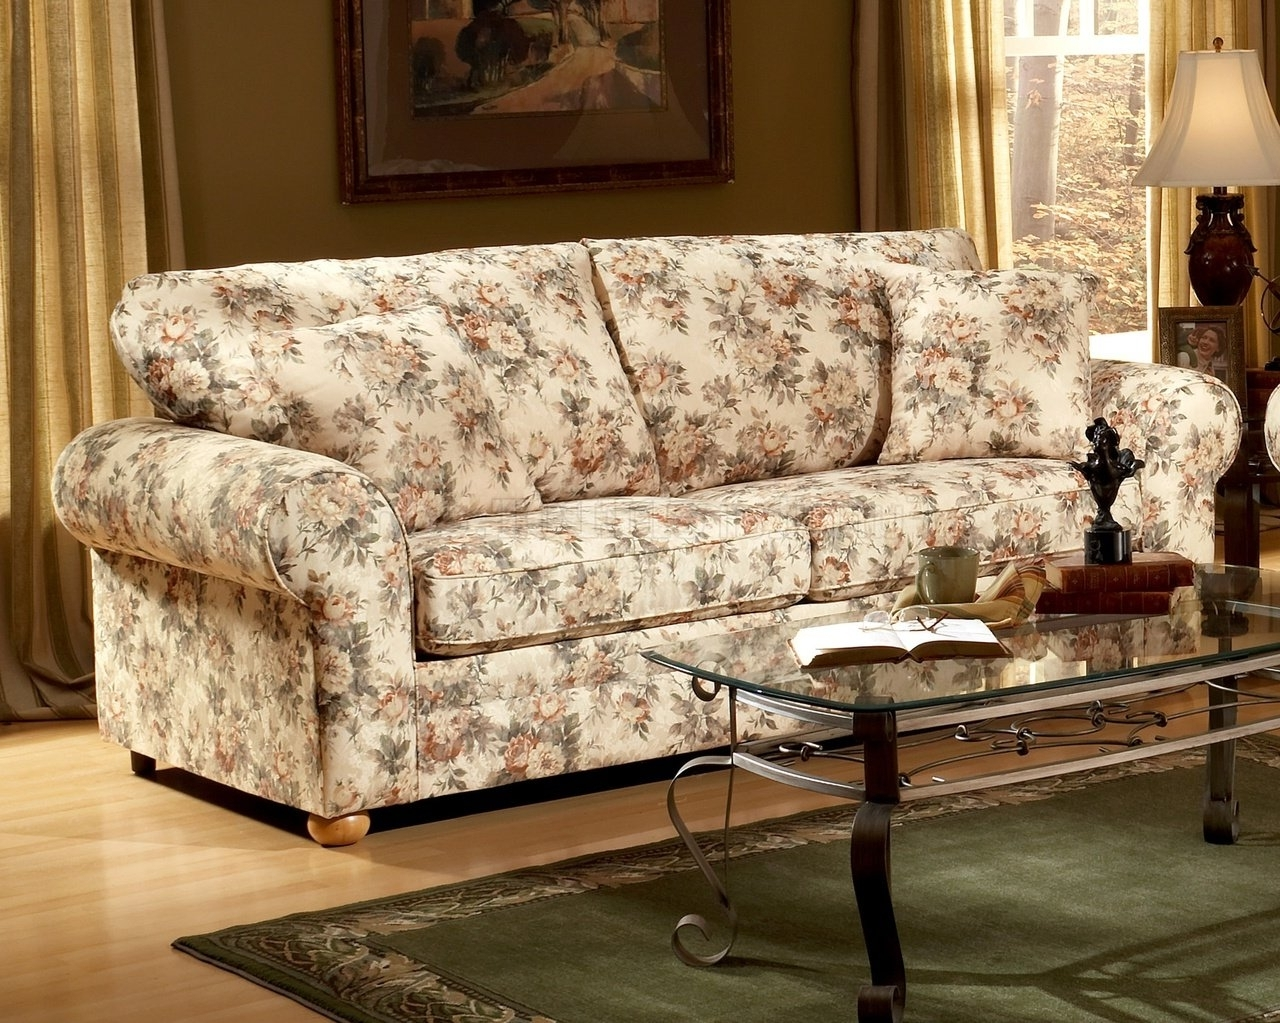 2018 Pattern Fabric Traditional Sofa & Loveseat Set Pertaining To Traditional Fabric Sofas (View 8 of 15)